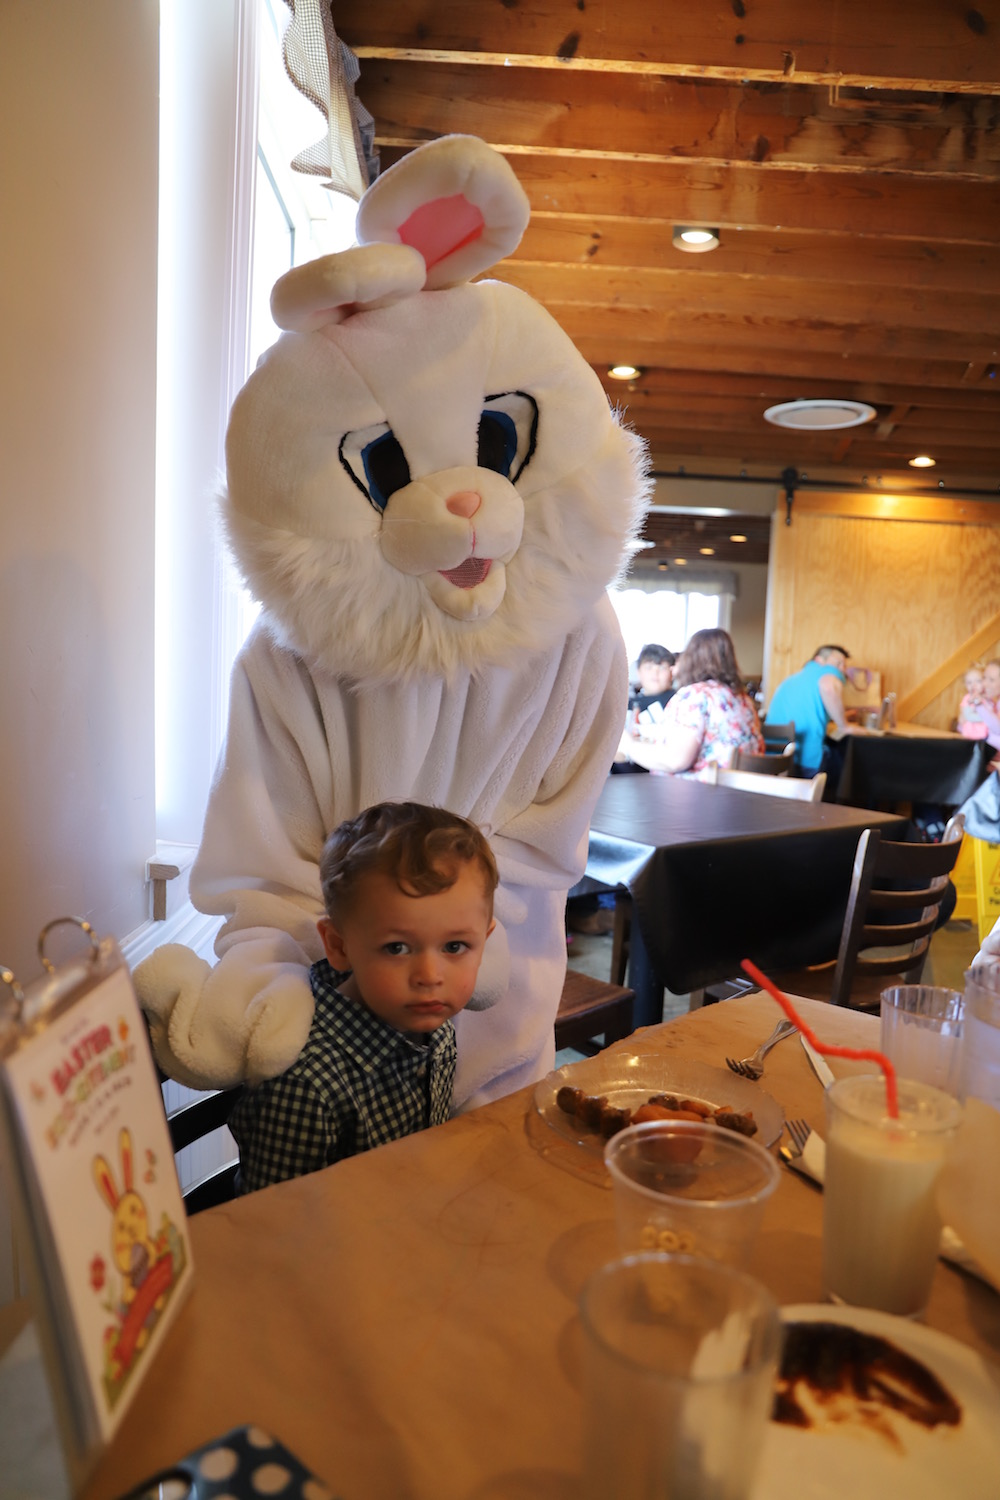 A Very Bunny Weekend at Eckert's - St. Louis family & lifestyle blogger Liz of lizrotz.com